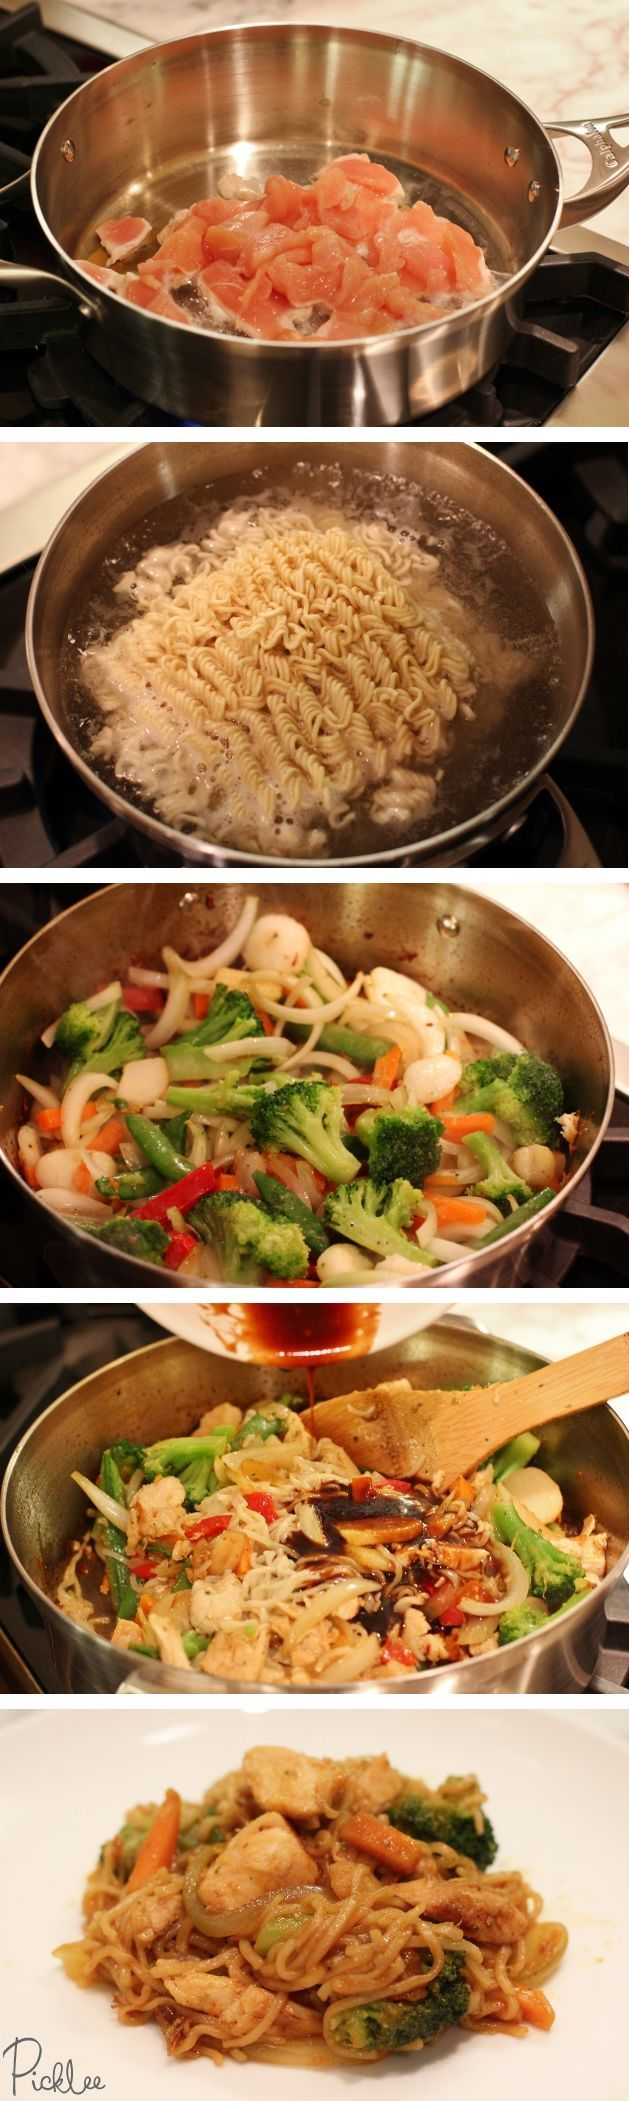 Super Simple Chicken Chow Mein Recipe for those 12 hour shift days!